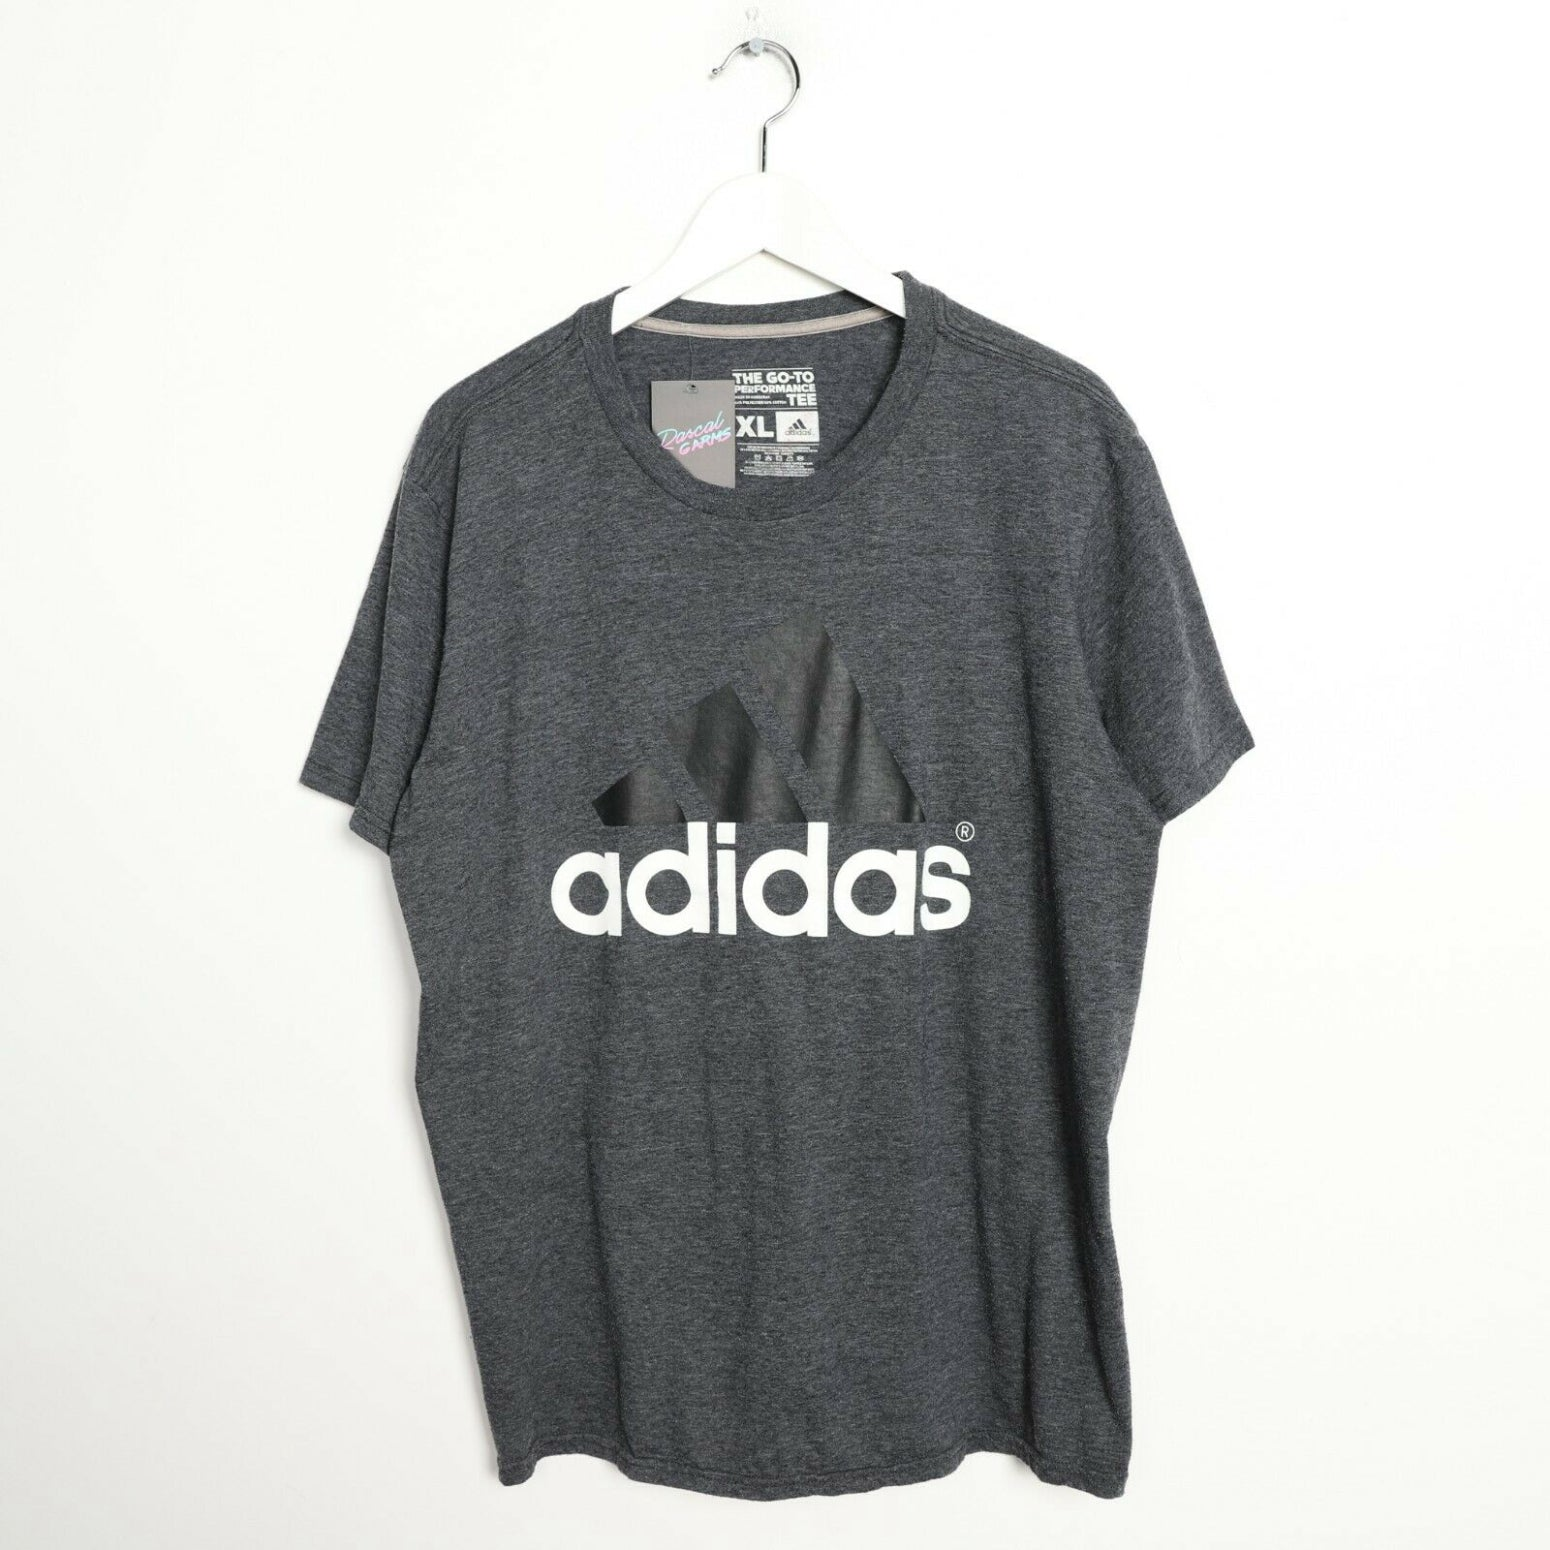 Vintage ADIDAS Big Logo T Shirt Tee Dark Grey XL